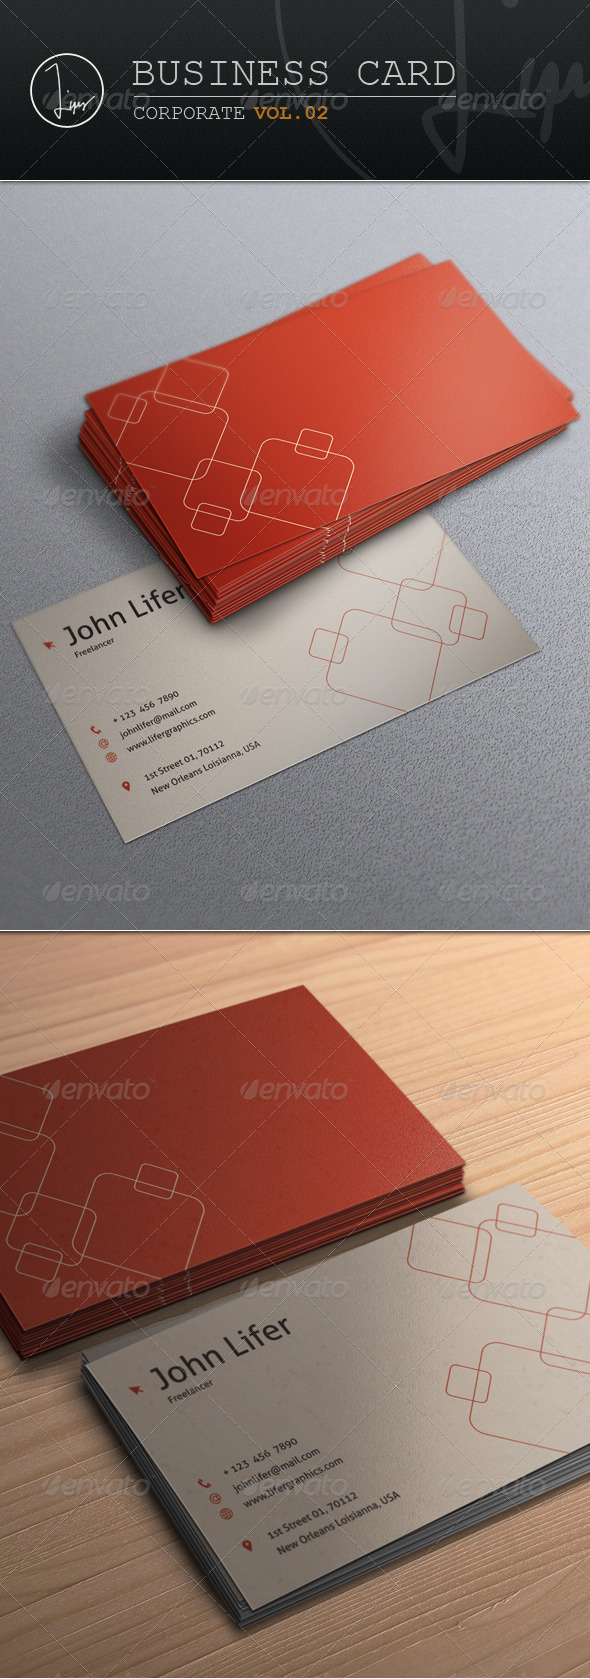 Business Card / Corporate Vol.02 - Business Cards Print Templates